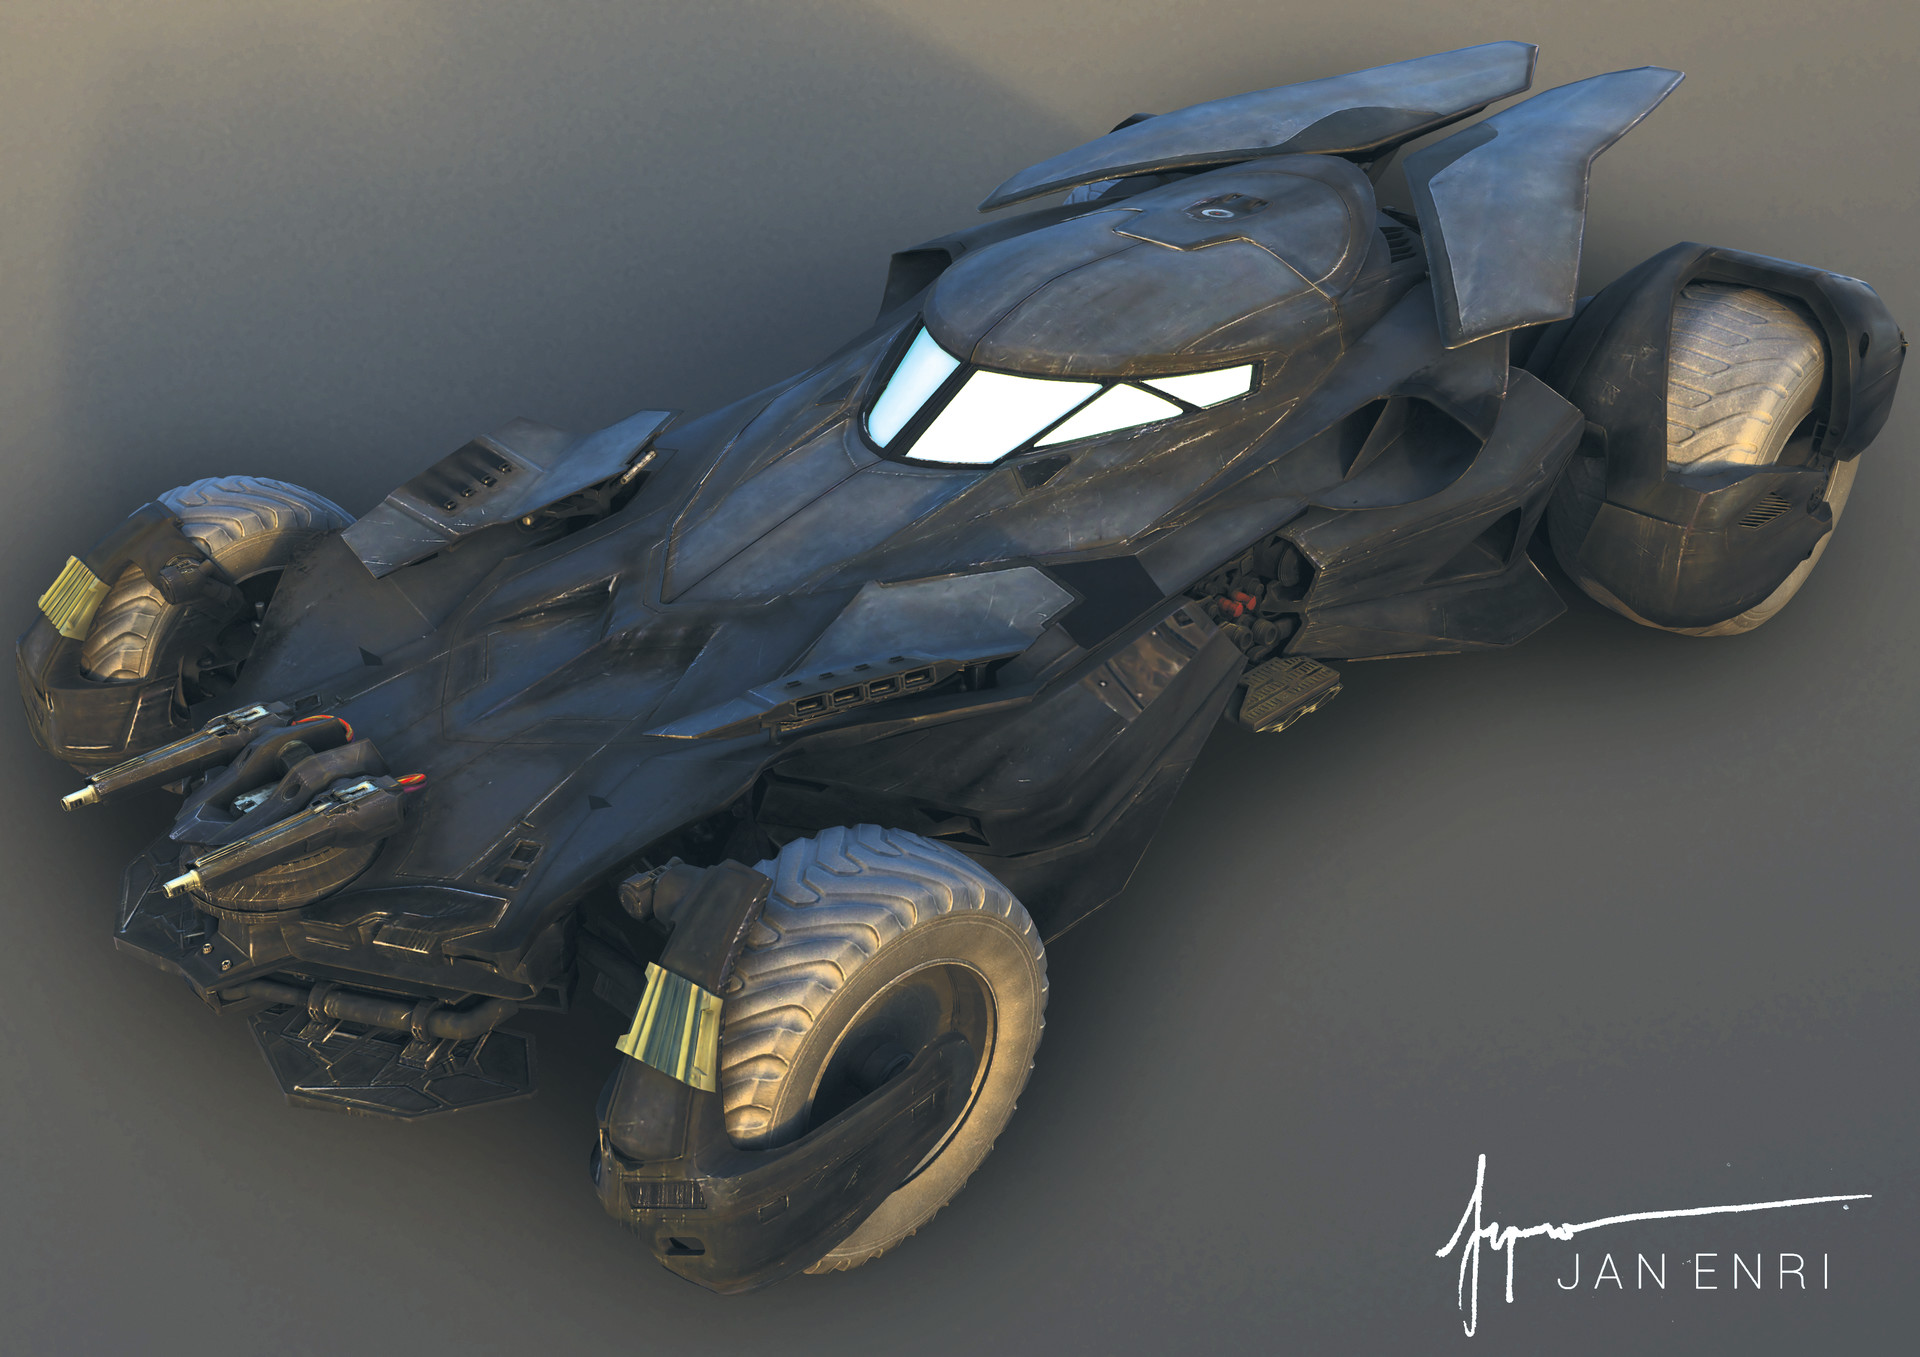 Jan enri arquero batmobile bvs